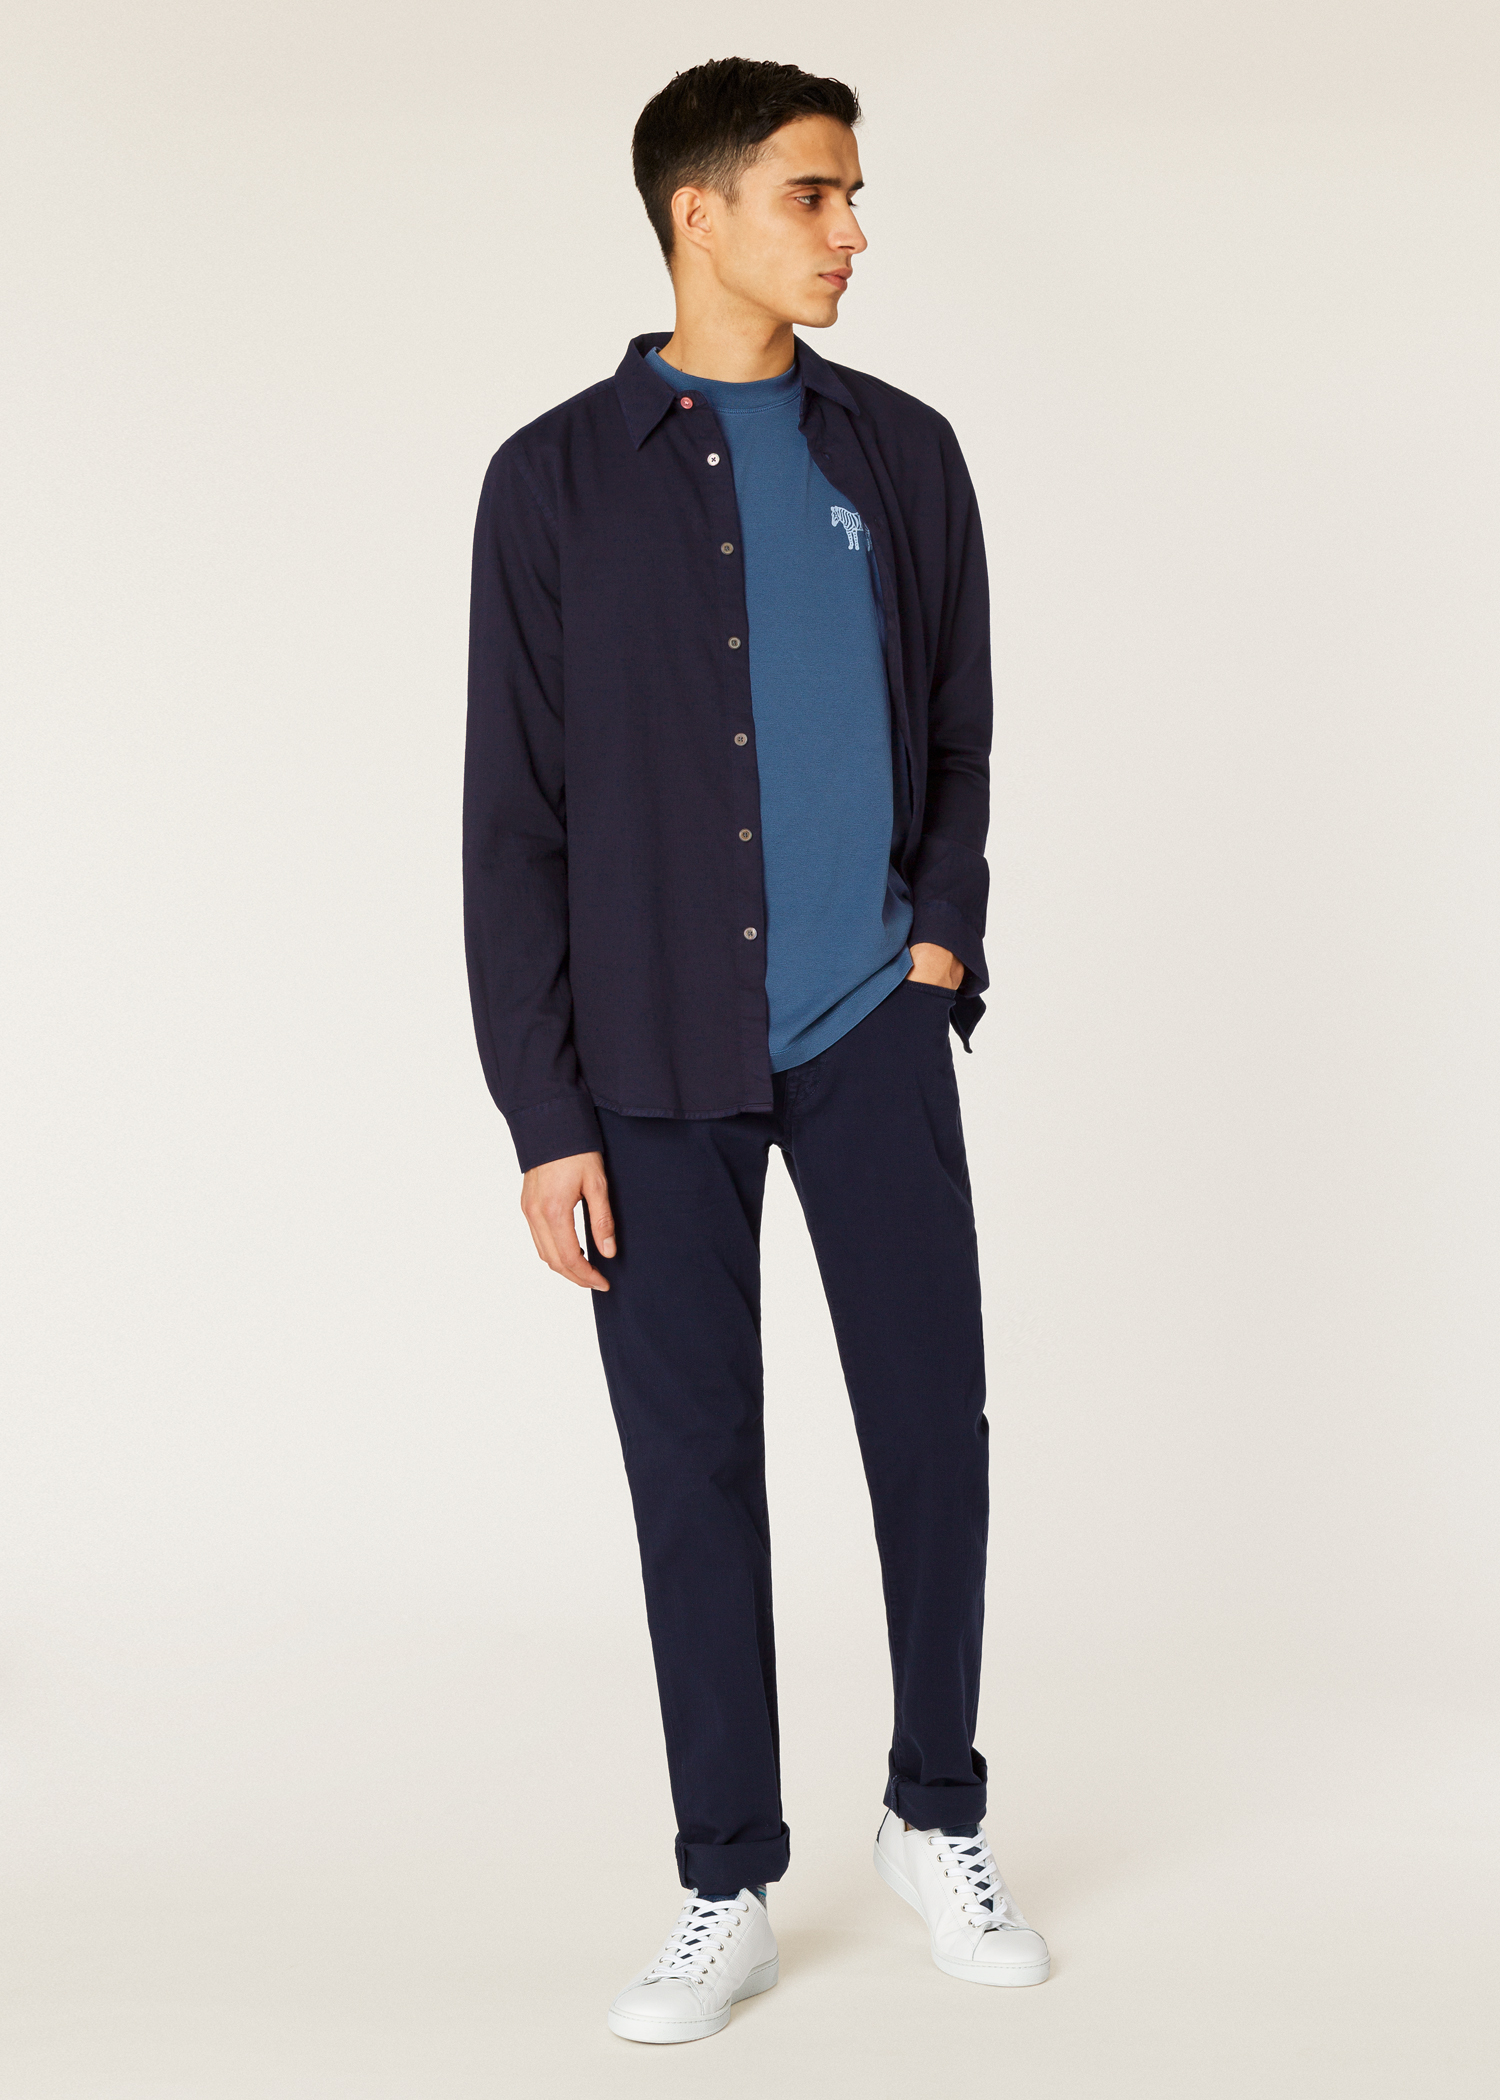 Mens Tapered Fit Navy Garment Dye Jeans Paul Smith Us